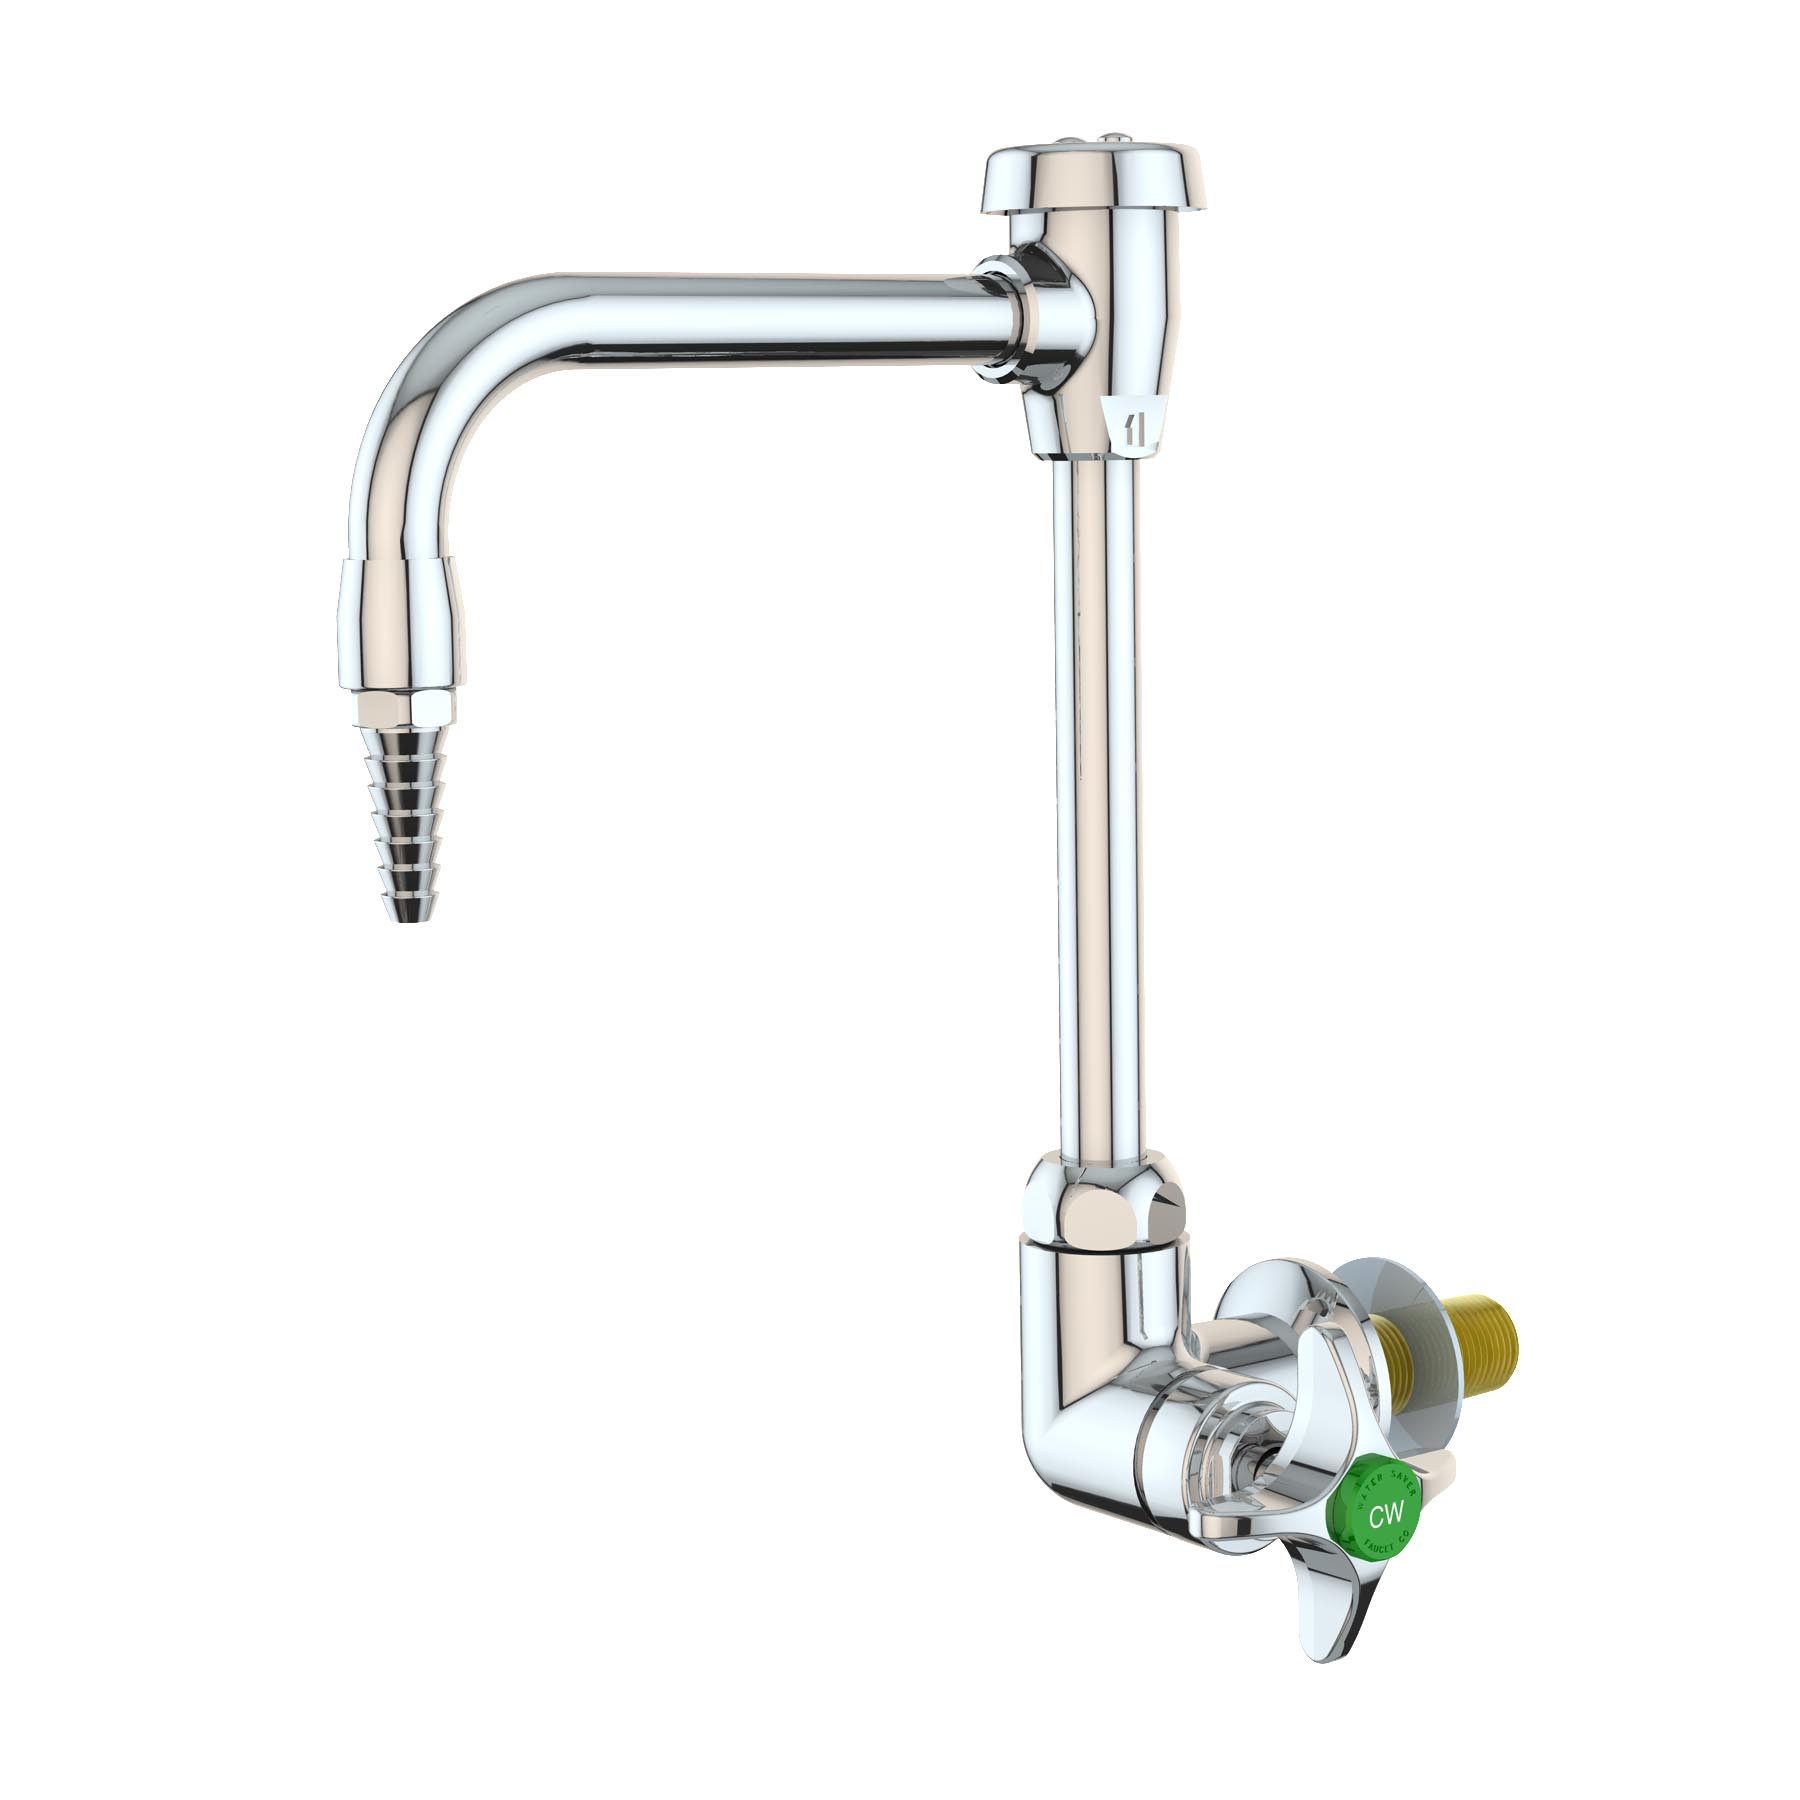 L2714VB-WSA – WaterSaver Faucet Co.